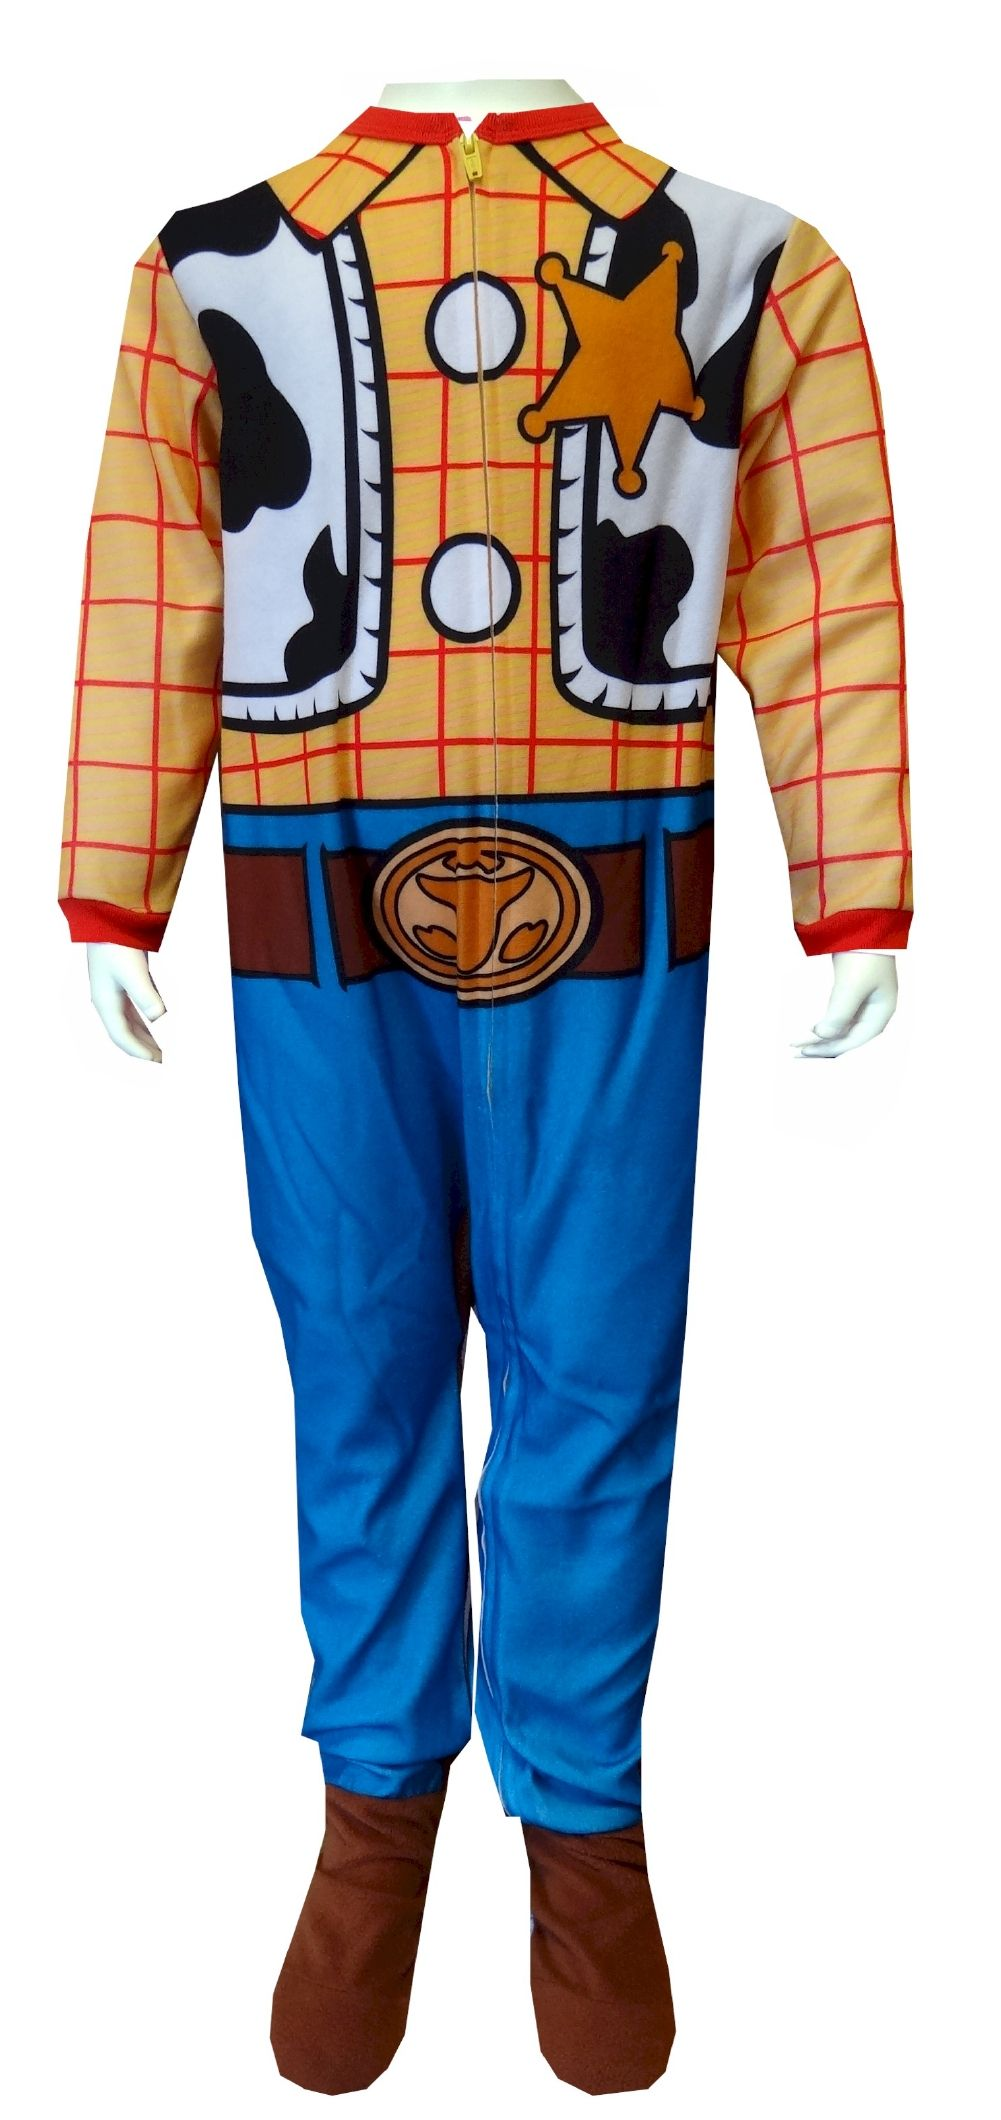 9e811a7a2 Disney Pixar Toy Story Woody Toddler Footie Pajama He'll look and feel like  Woody in these awesome character pajamas! This flame resistant blanket  sleeper ...